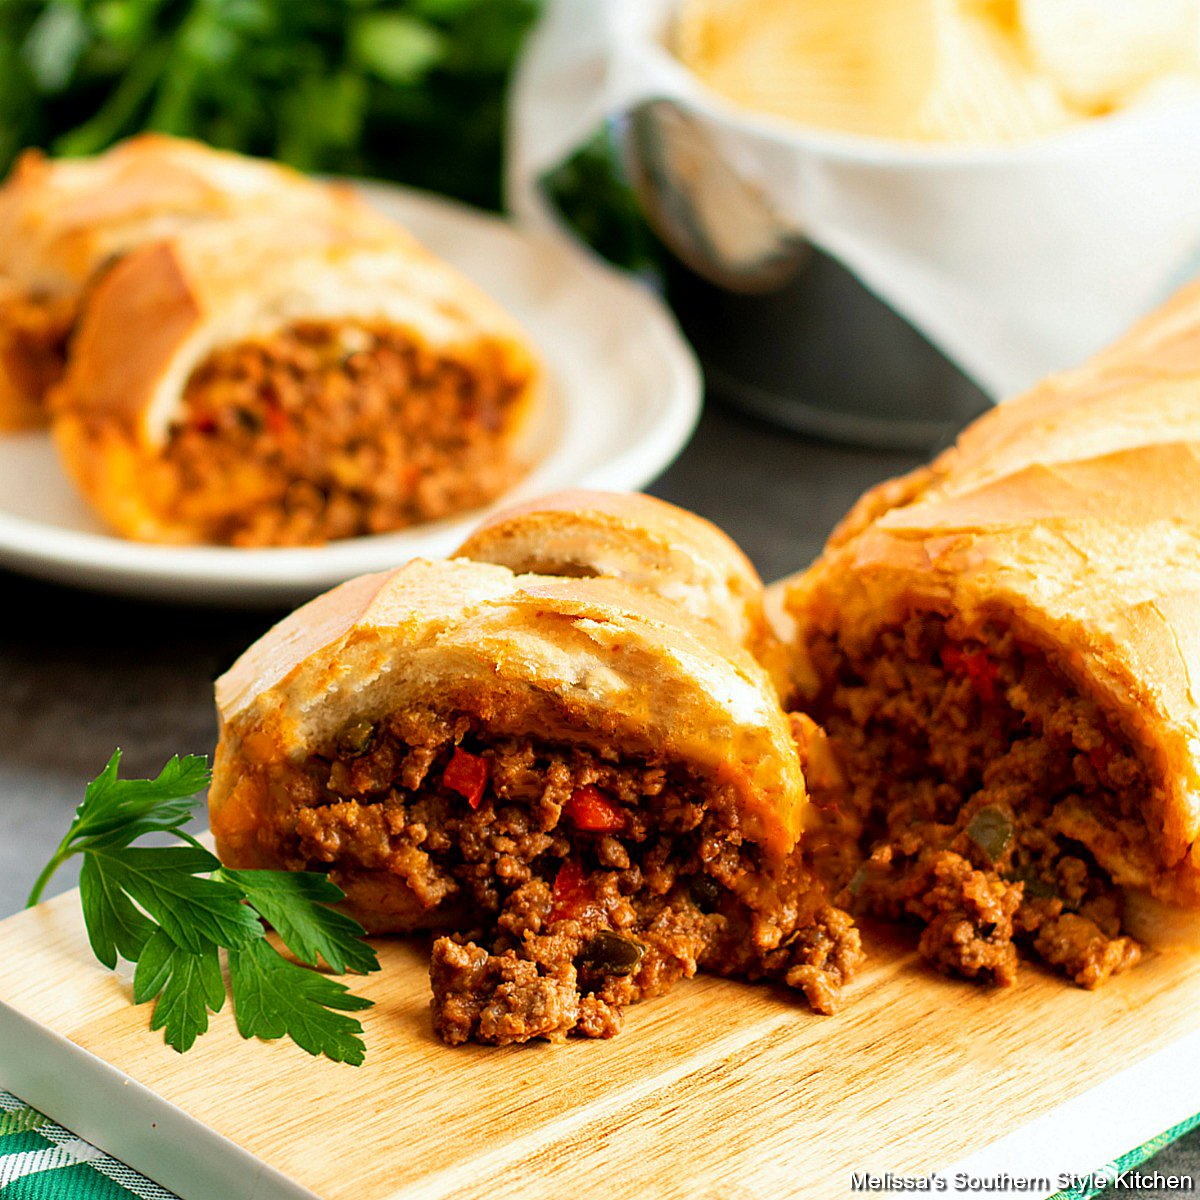 Sloppy Joes Stuffed Bread